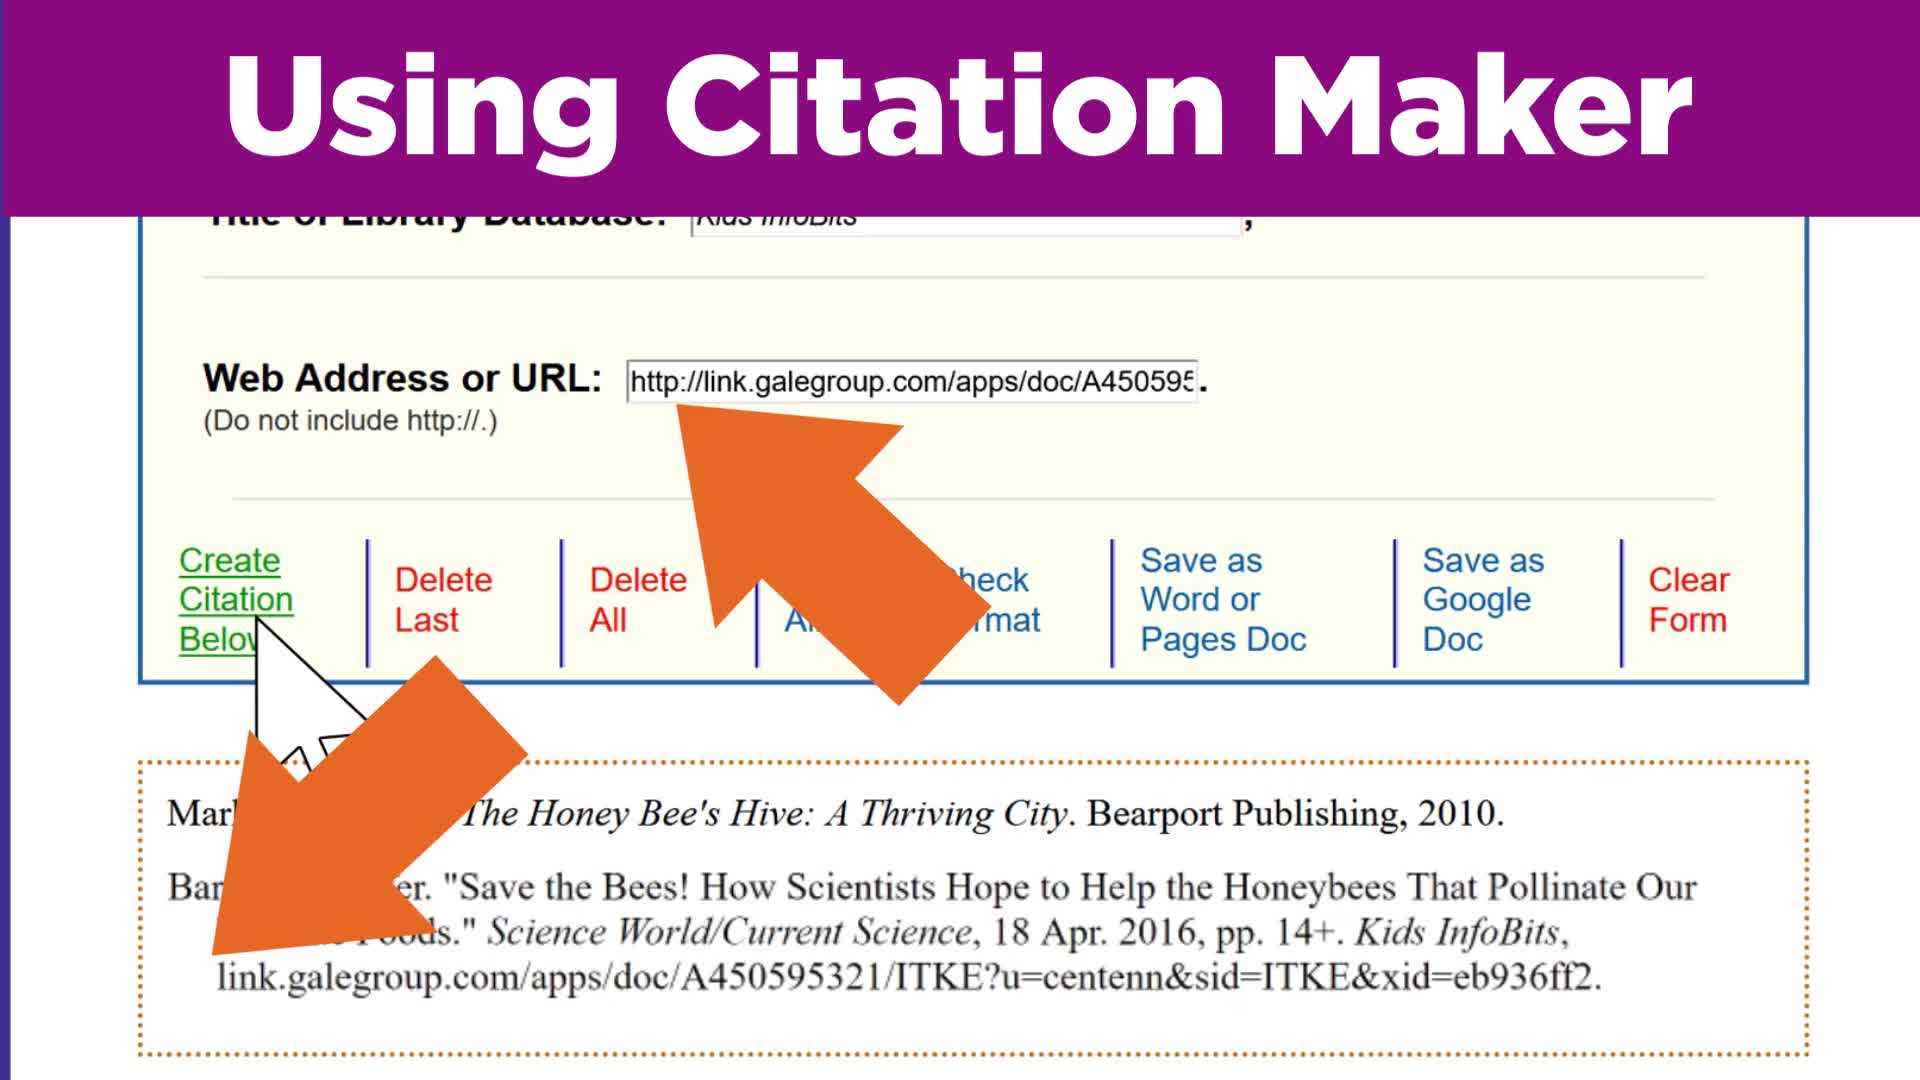 Using Citation Maker